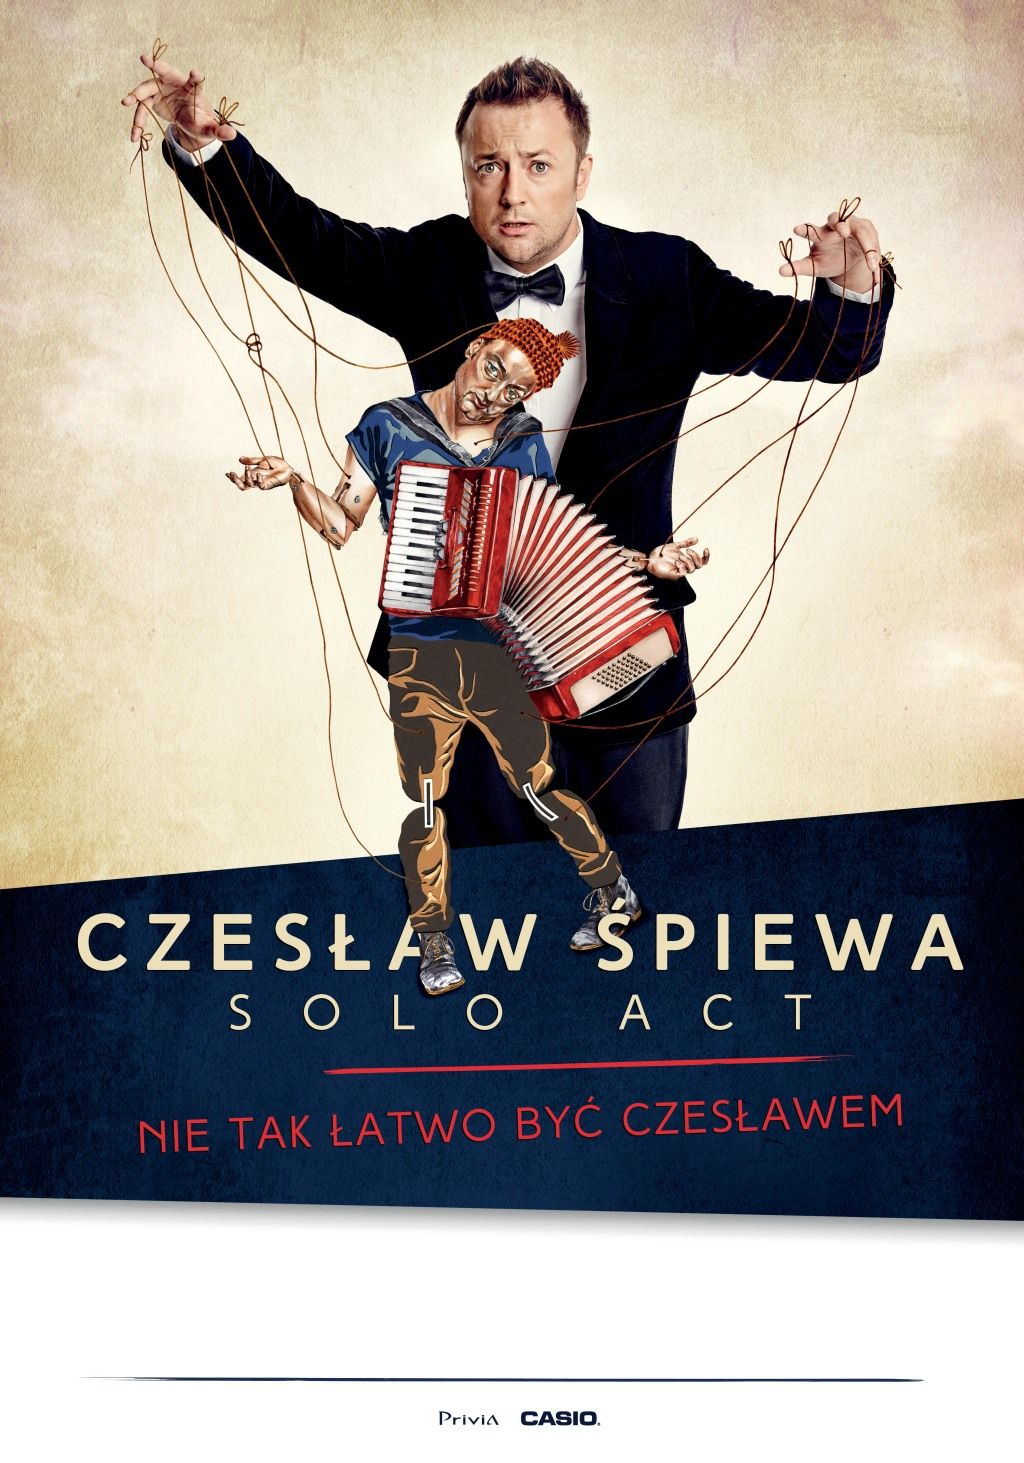 Plakat SoloAct nowy maly